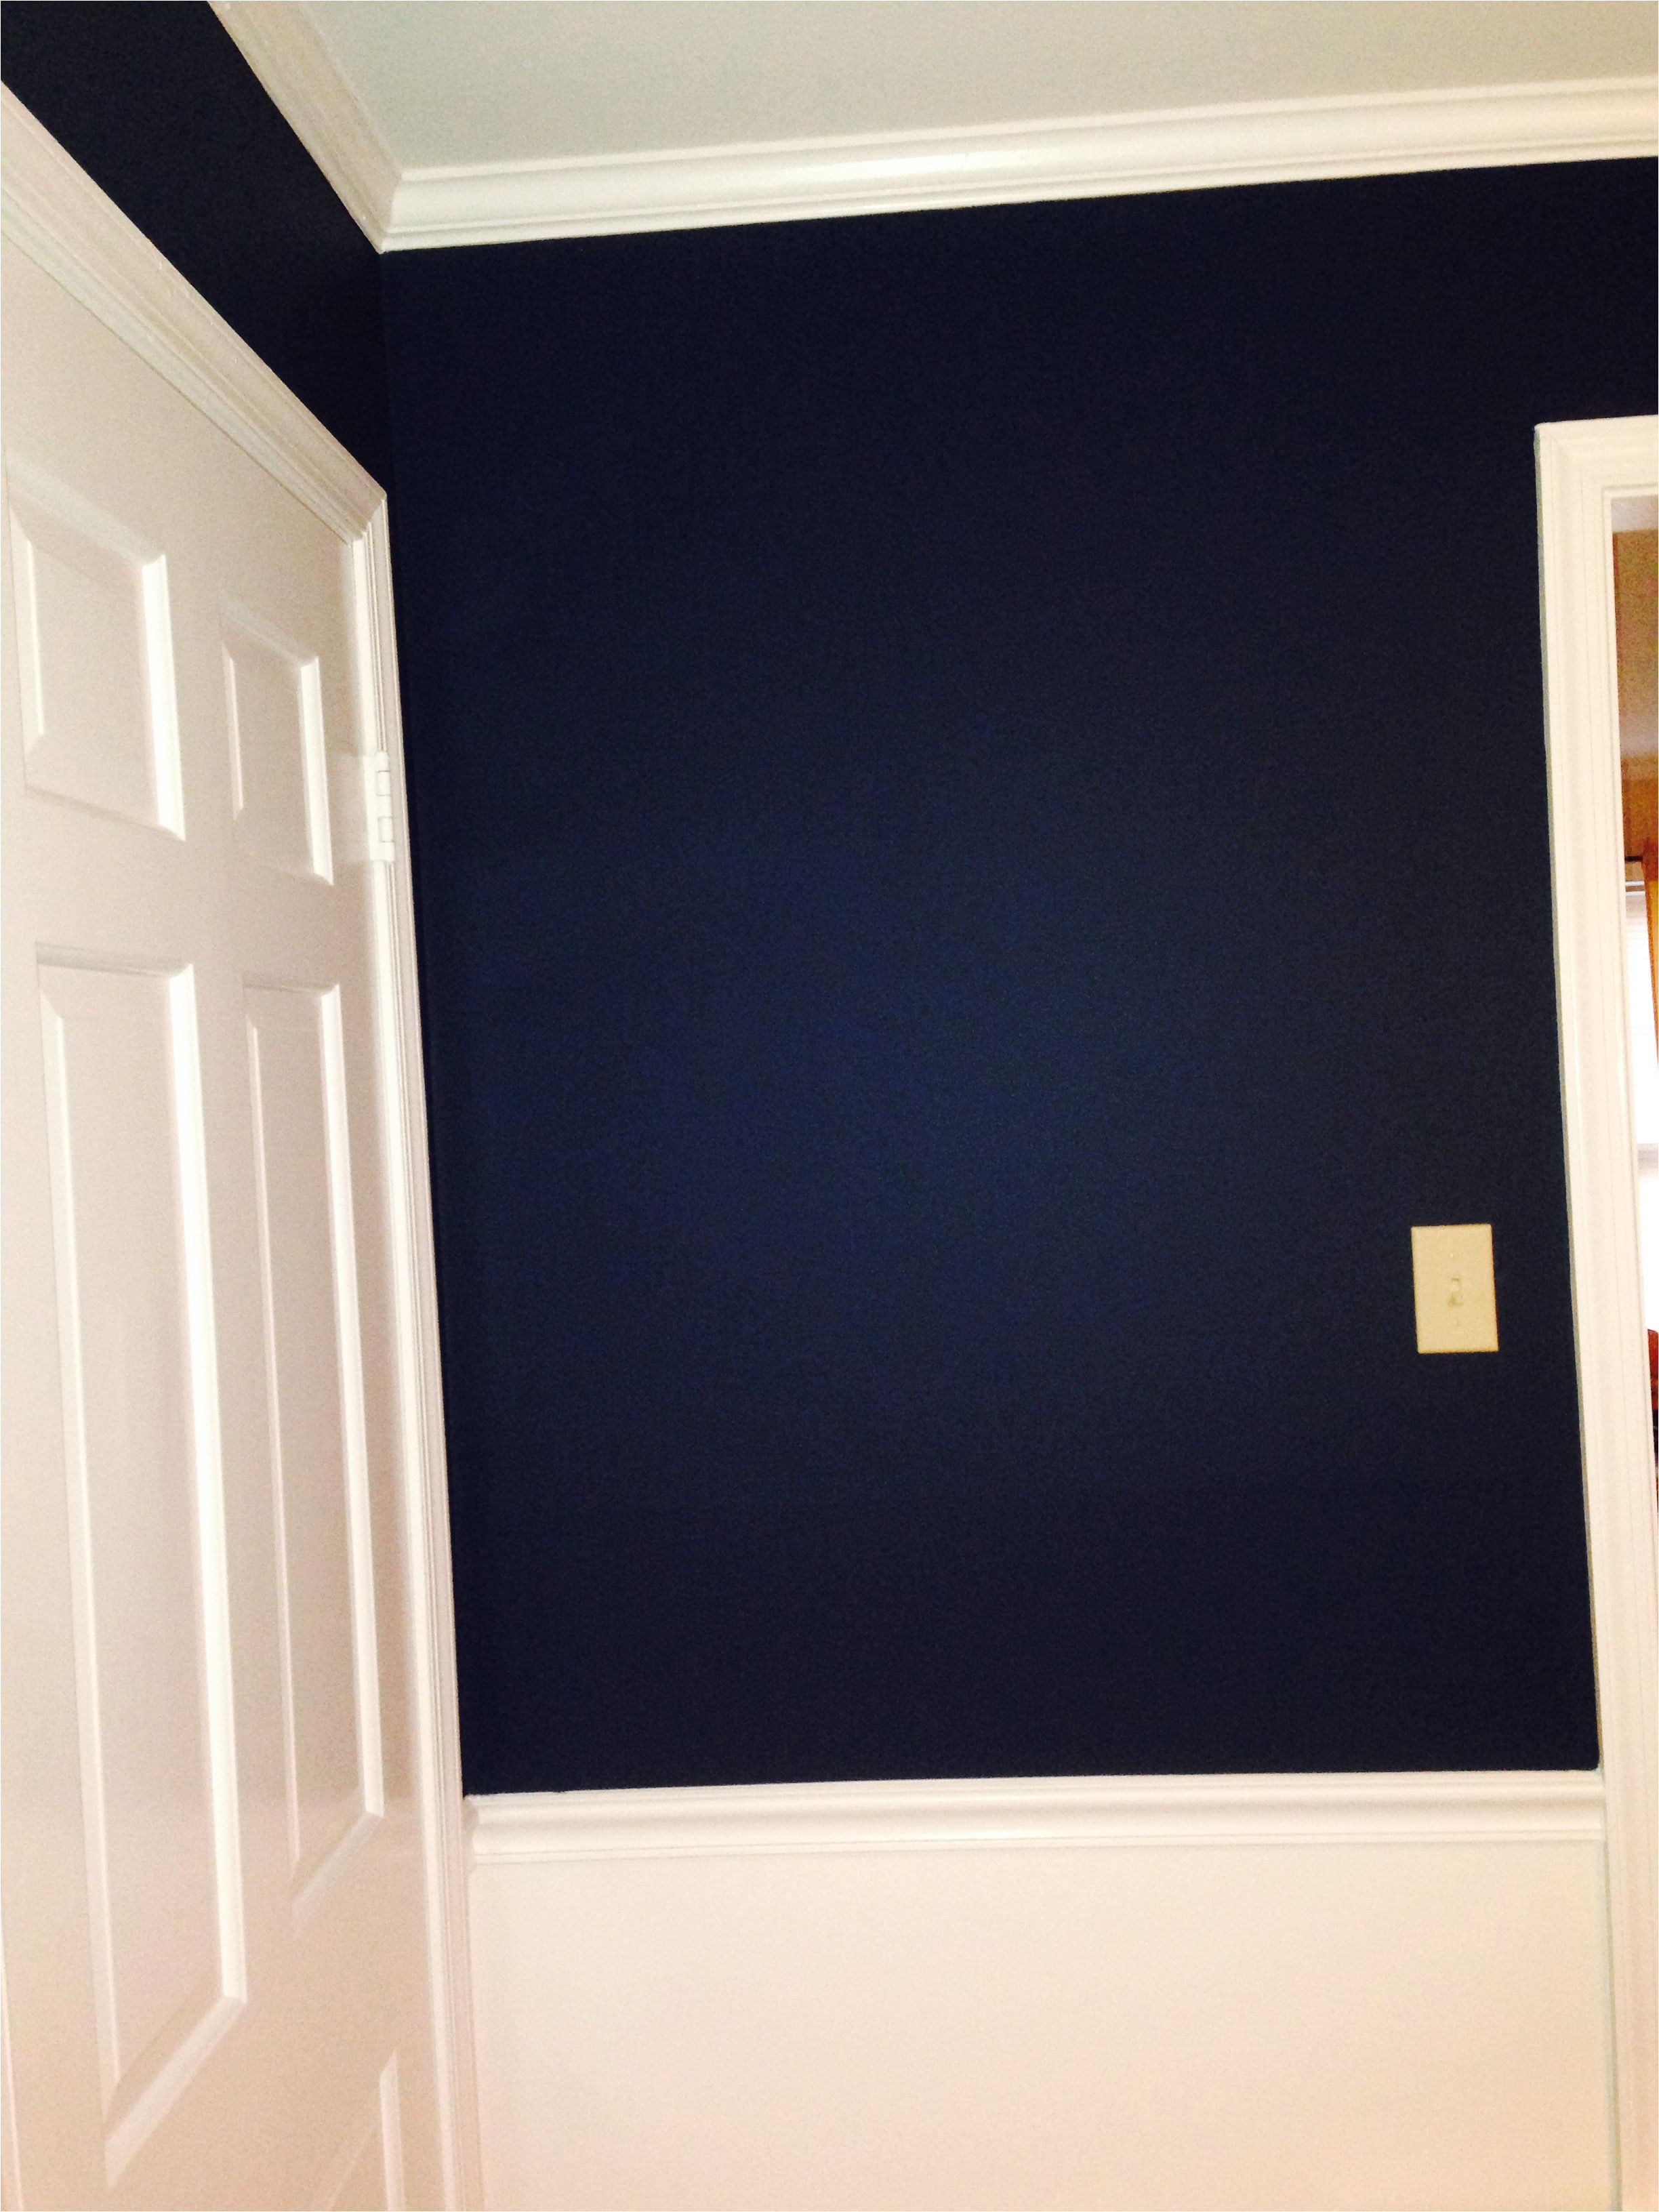 wall color is washington blue by benjamin moore cw 630 and harwood putty cw 5